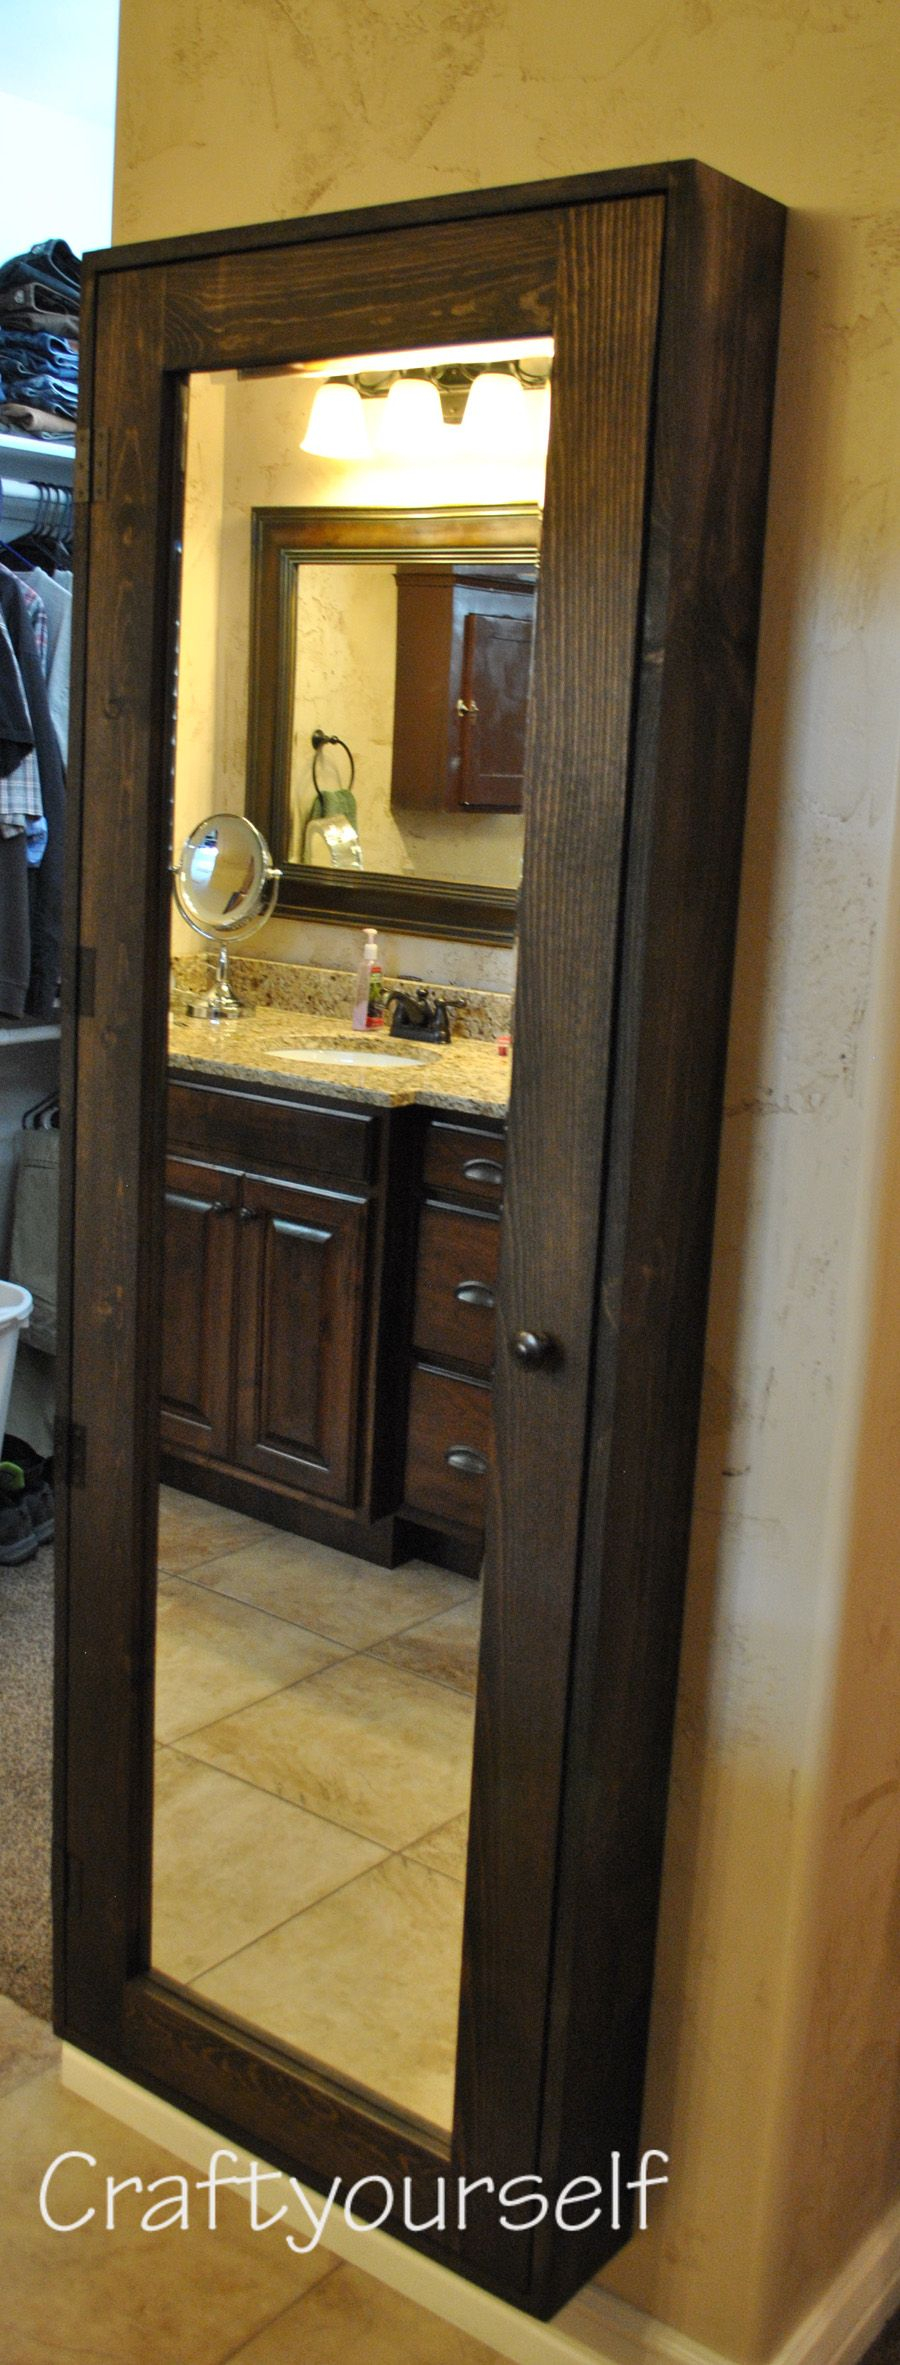 Diy Bathroom Cabinet With Mirror For The Home Bathroom within proportions 900 X 2365